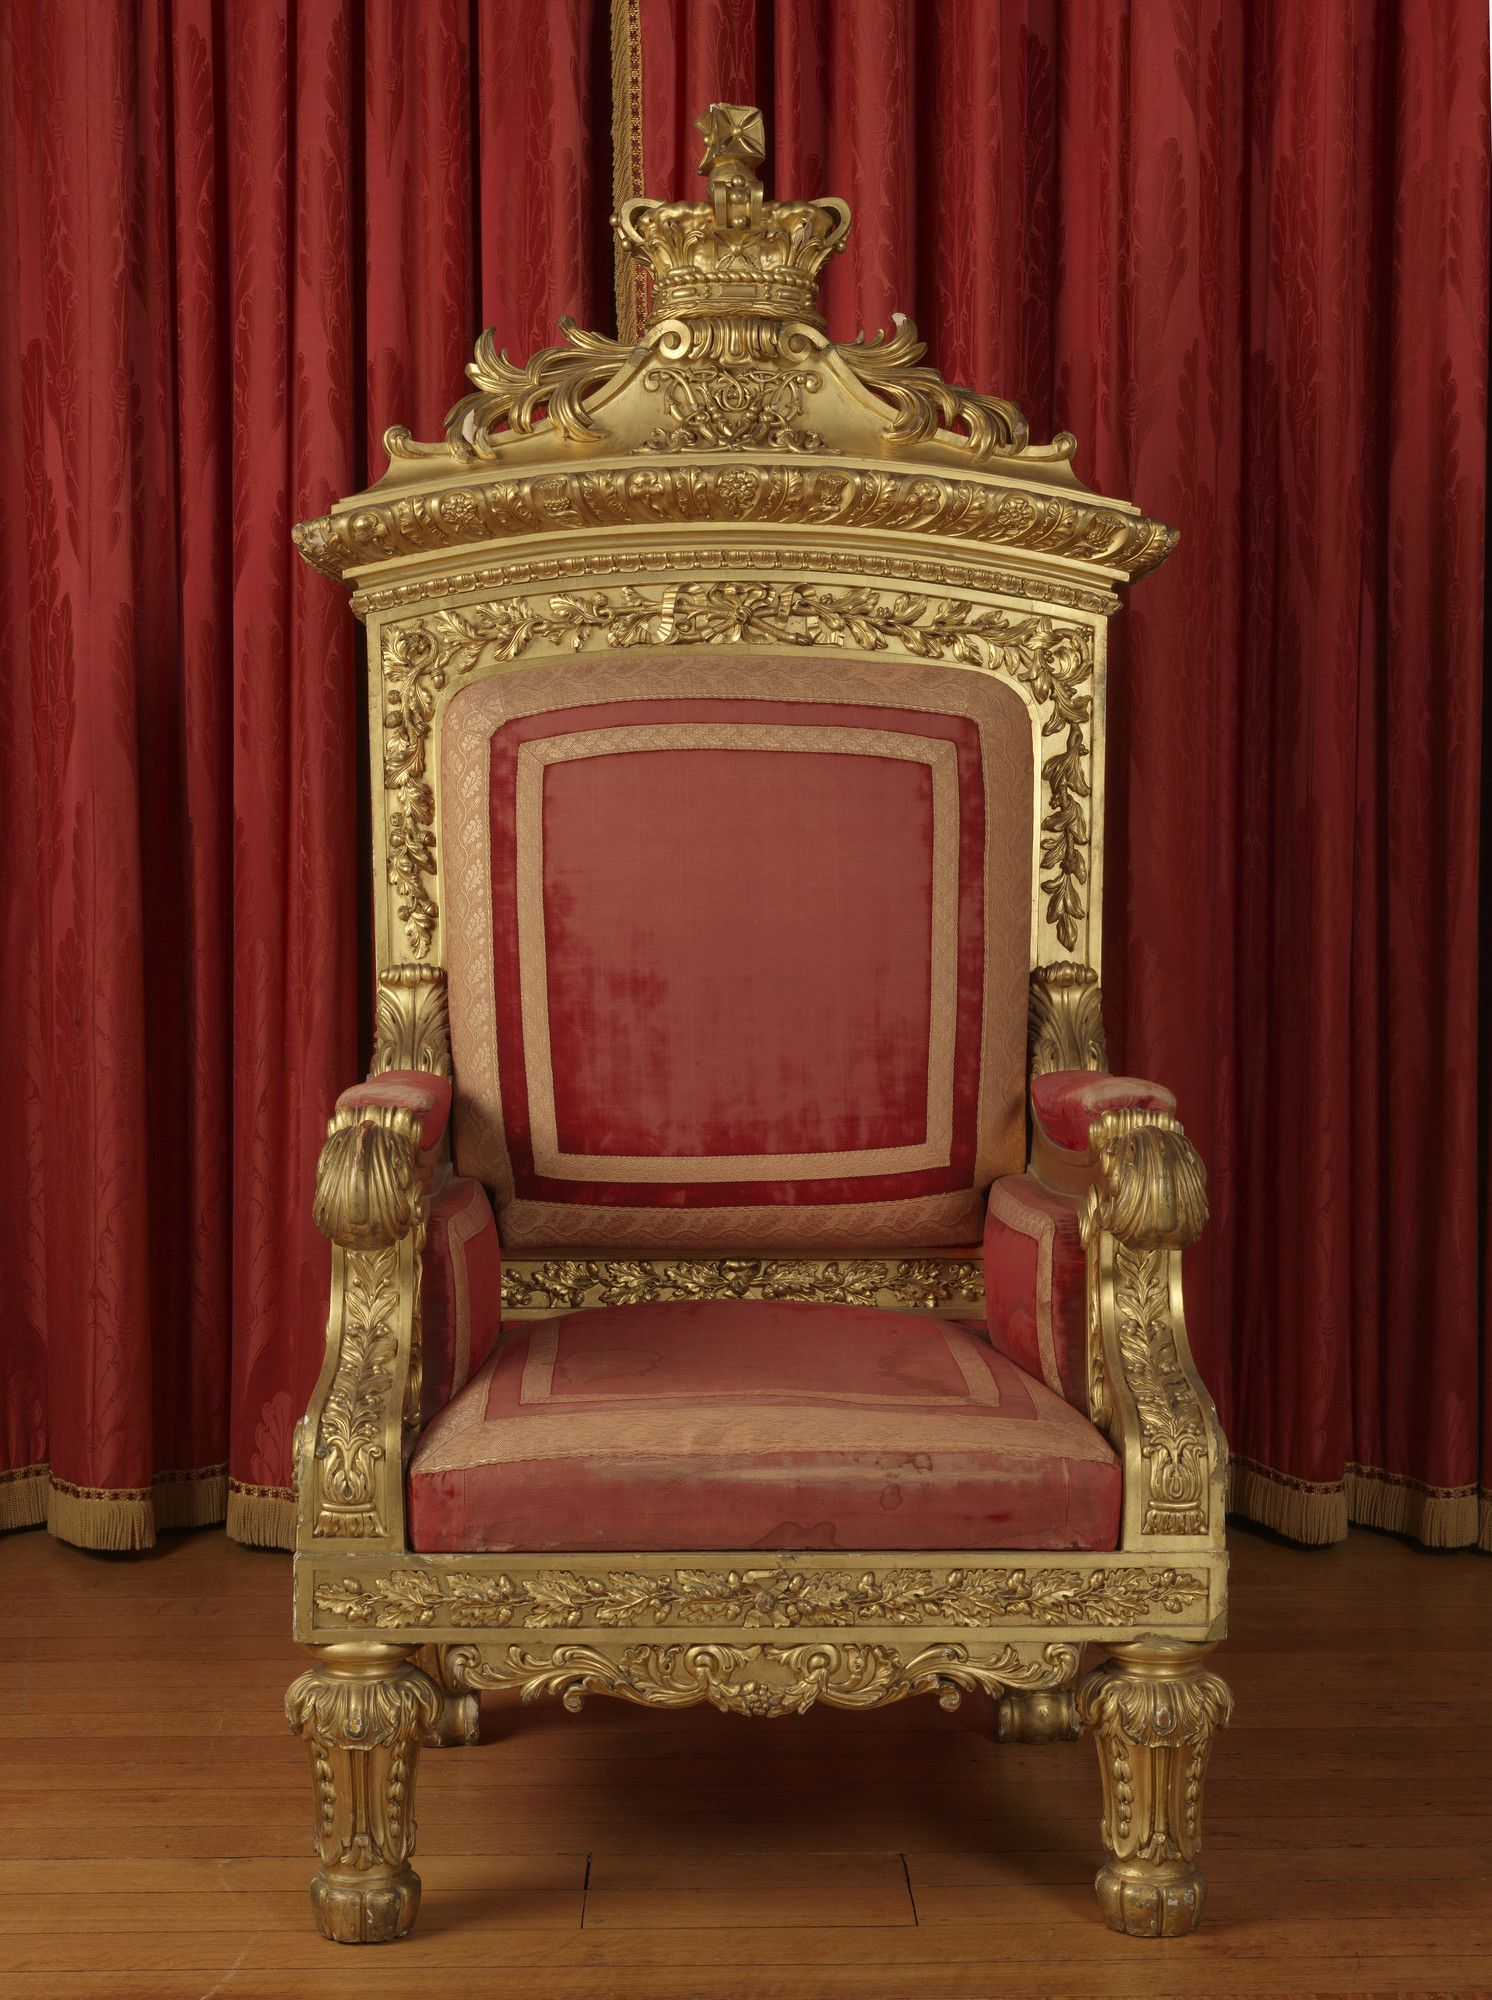 King And Queen Chairs For Rent Rocking Chair Cushions Set Indoor Victoria 39s Throne Made Her Coronation In 1837